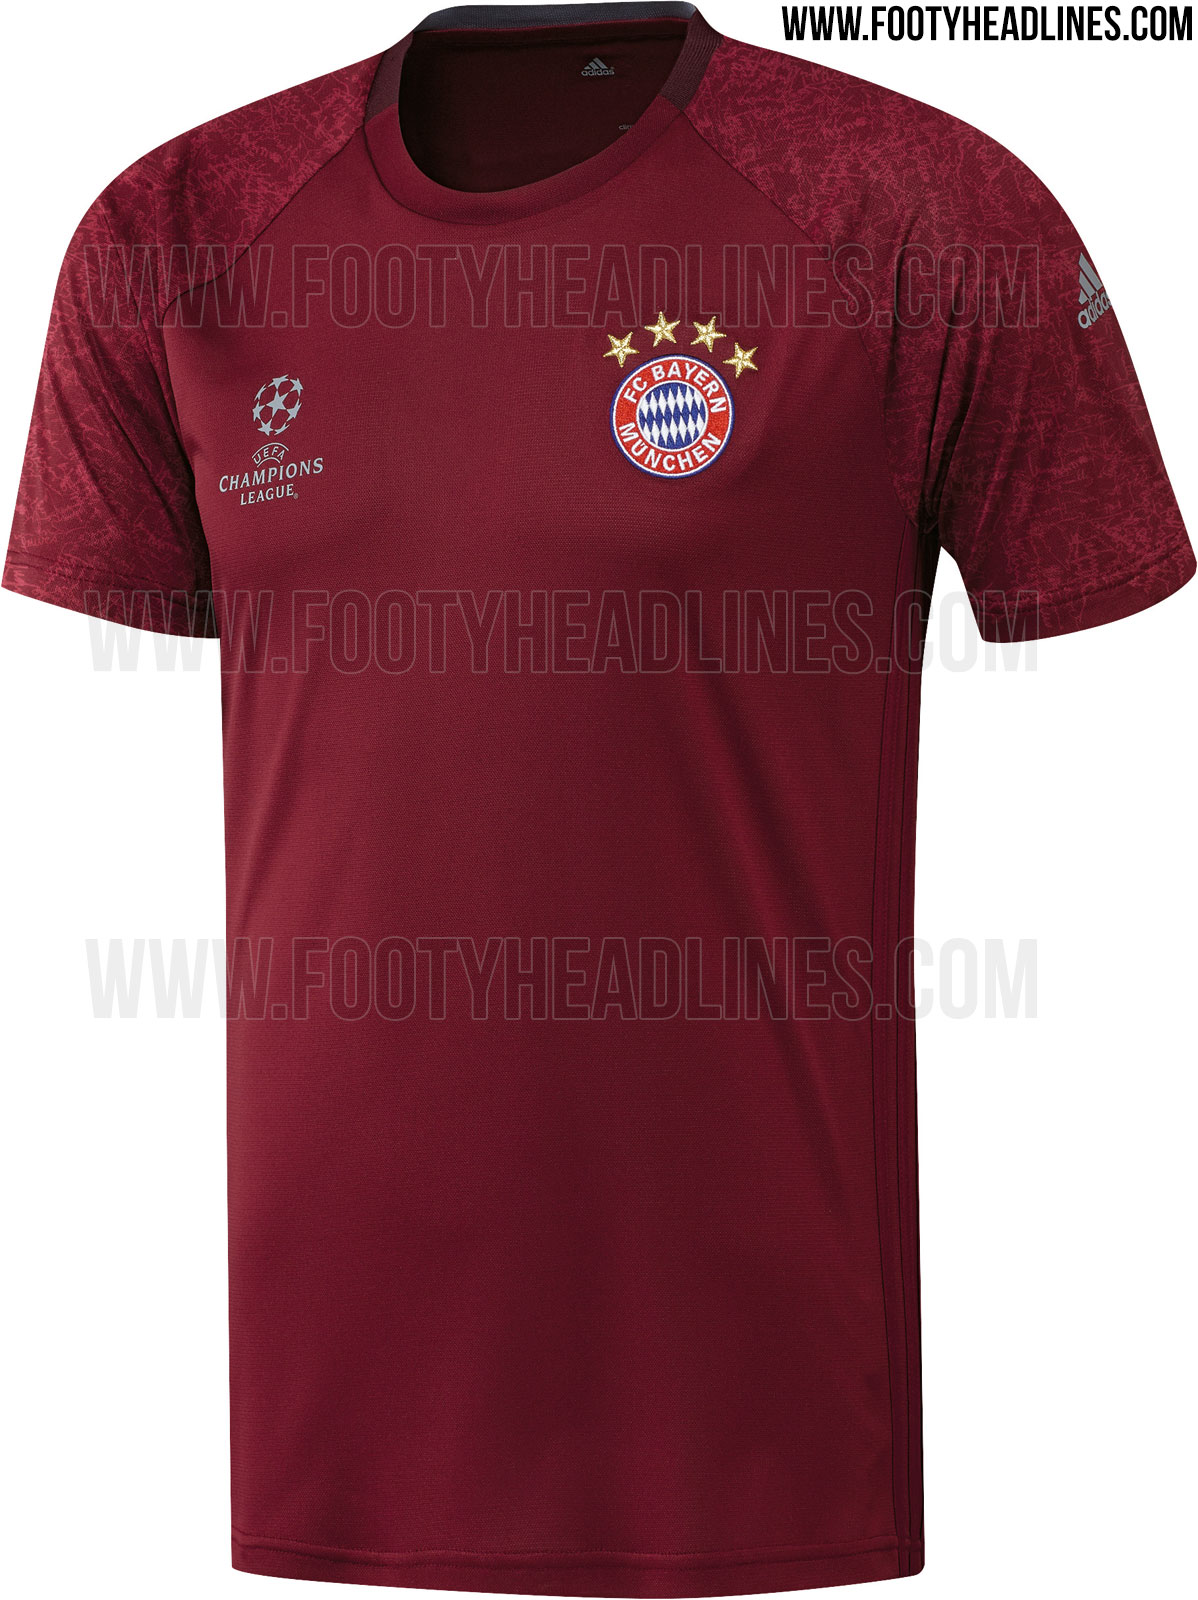 bayern m nchen 16 17 champions league trainings trikot. Black Bedroom Furniture Sets. Home Design Ideas